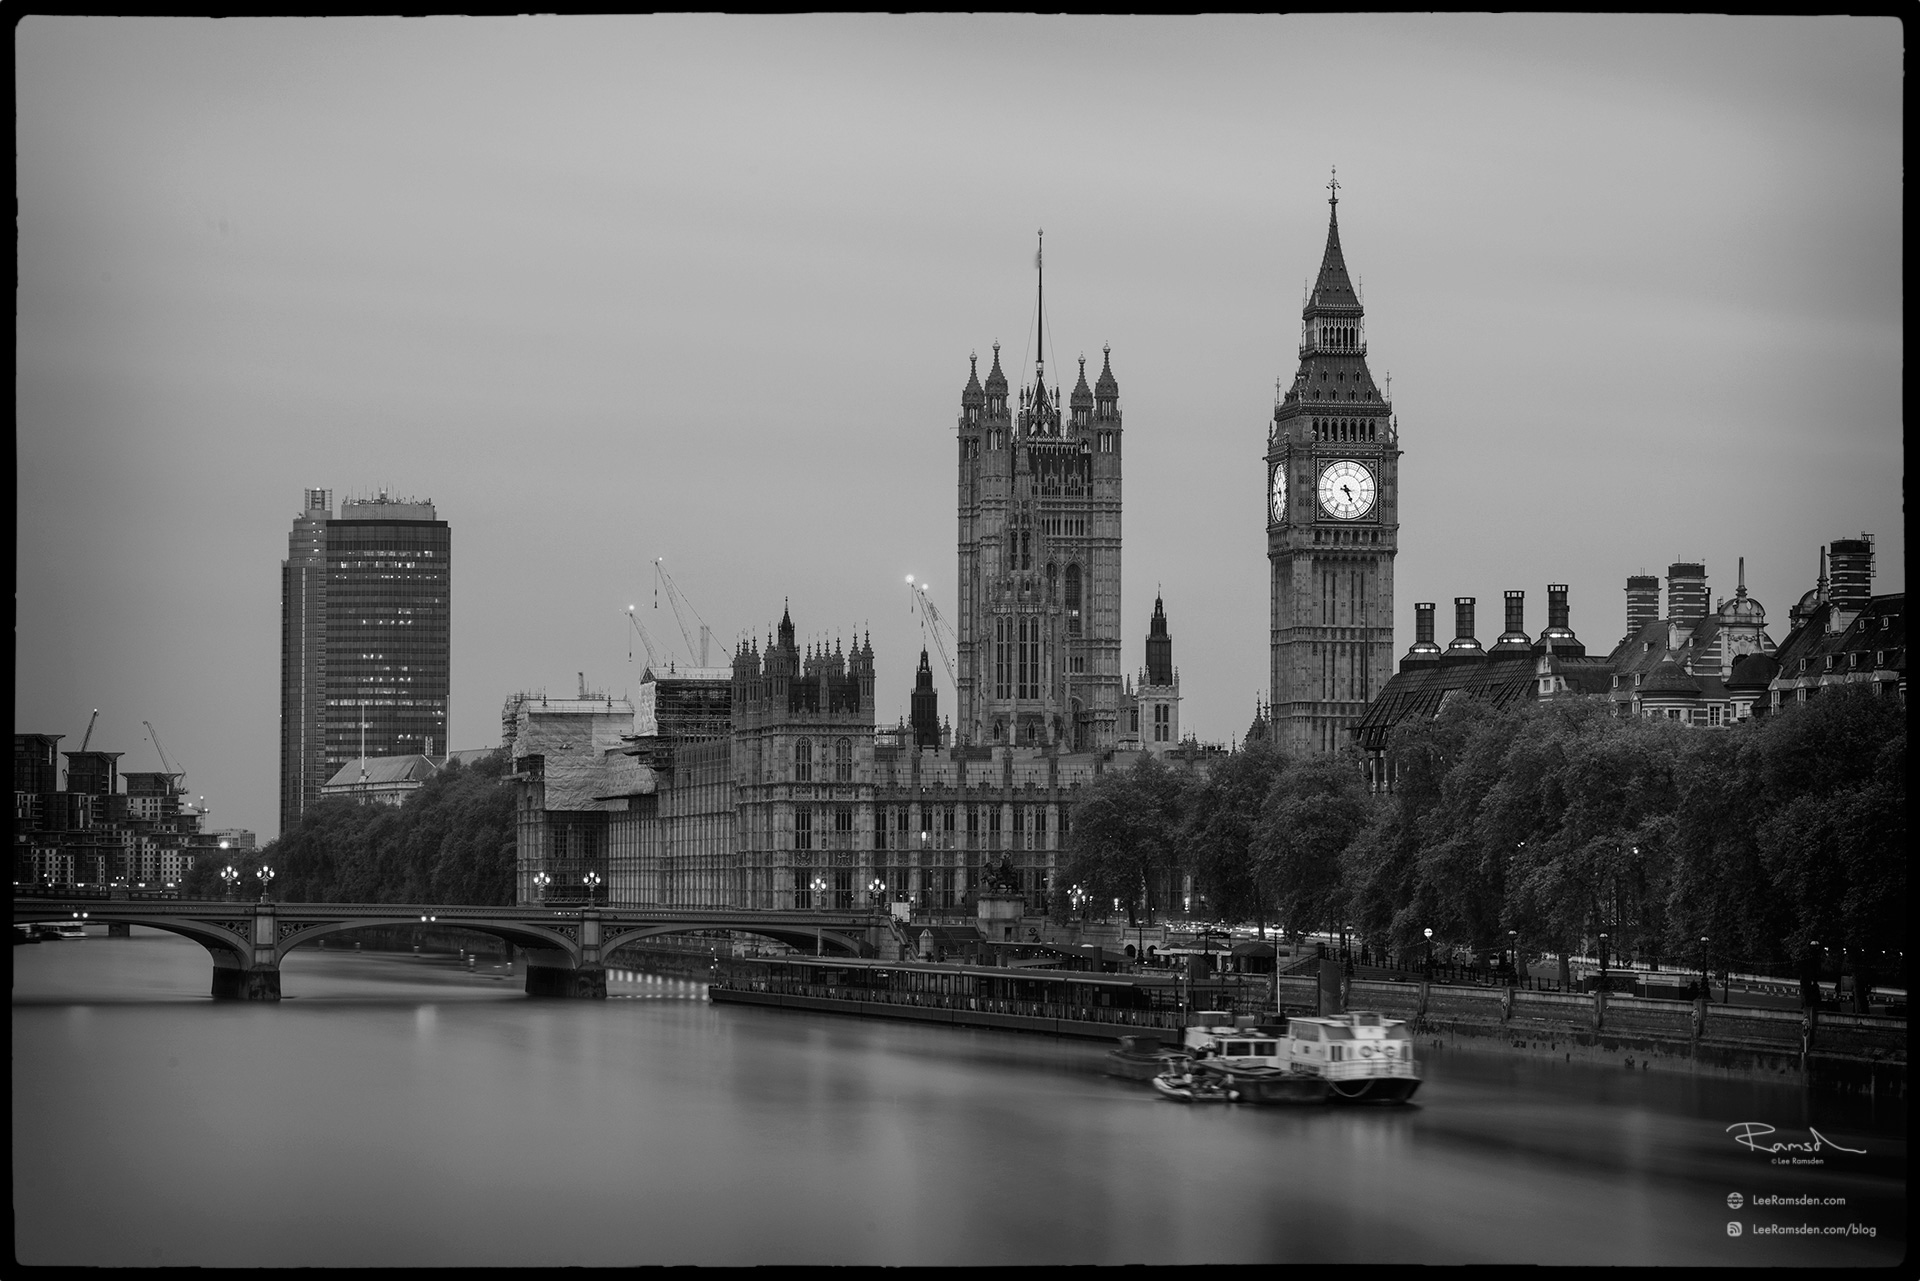 Big ben black and white monochrome image london bridge river thames westminster capital government lee ramsden leeramsden.com blog